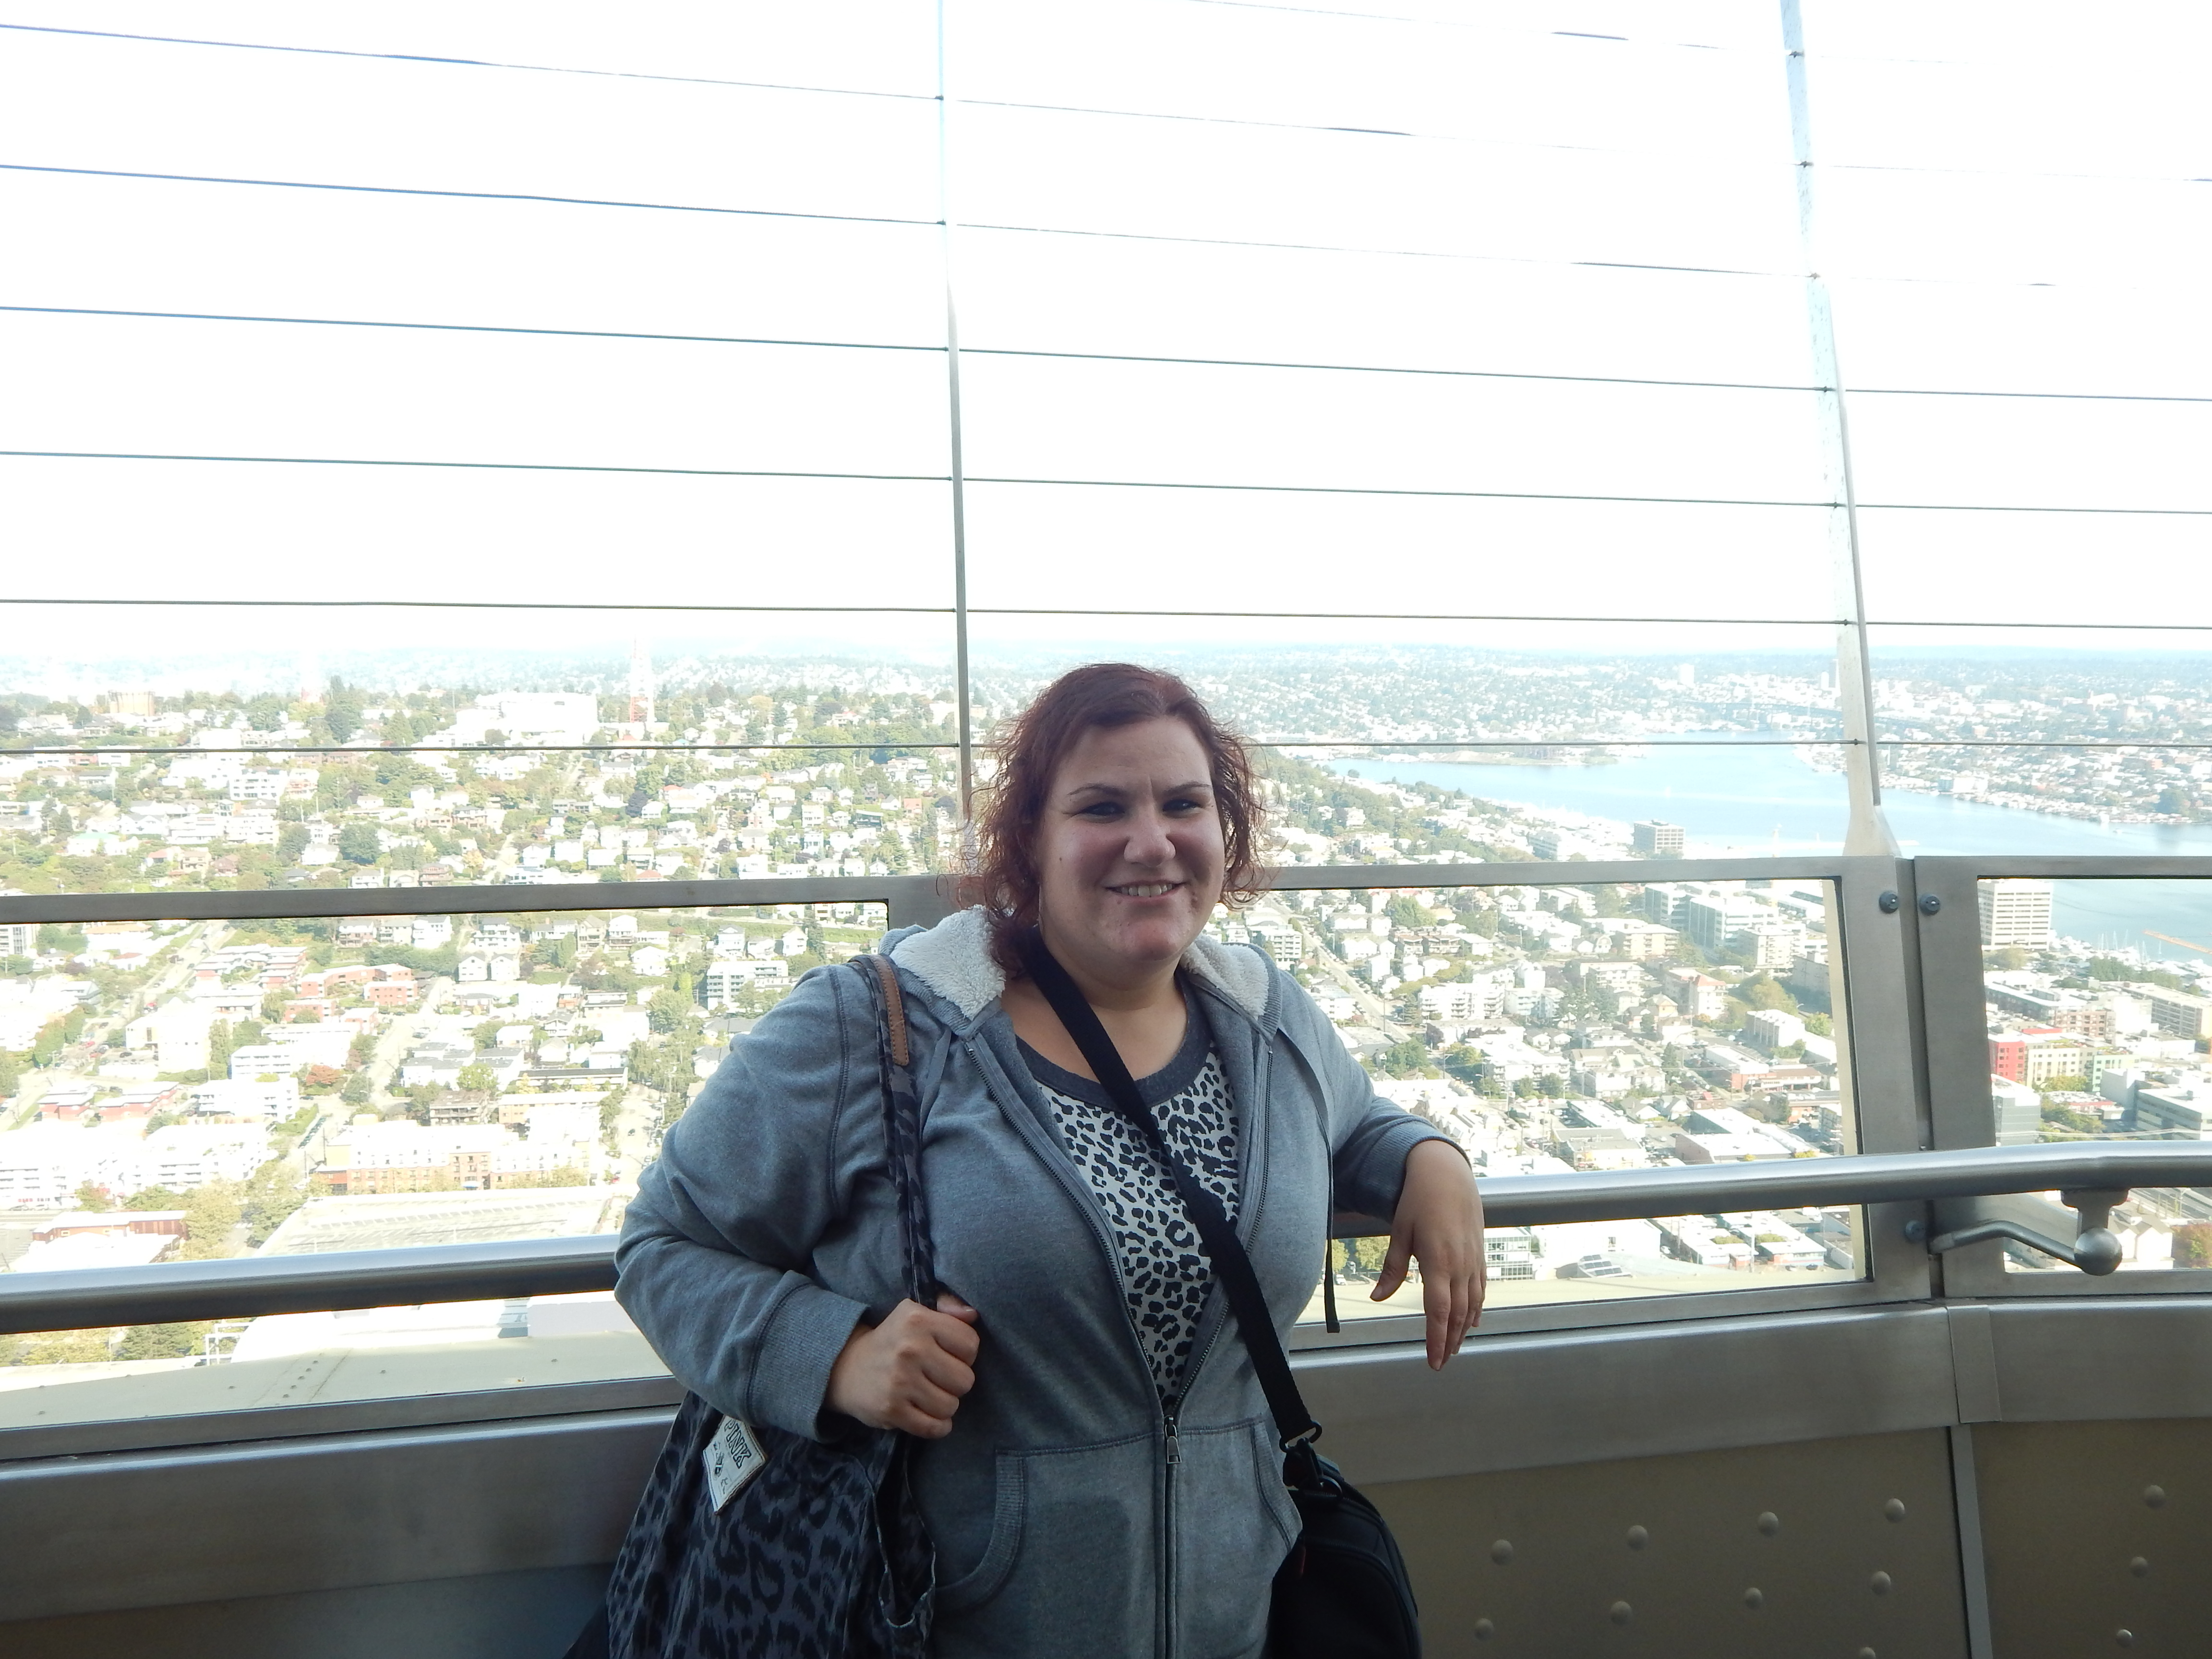 At the top of the Space Needle.